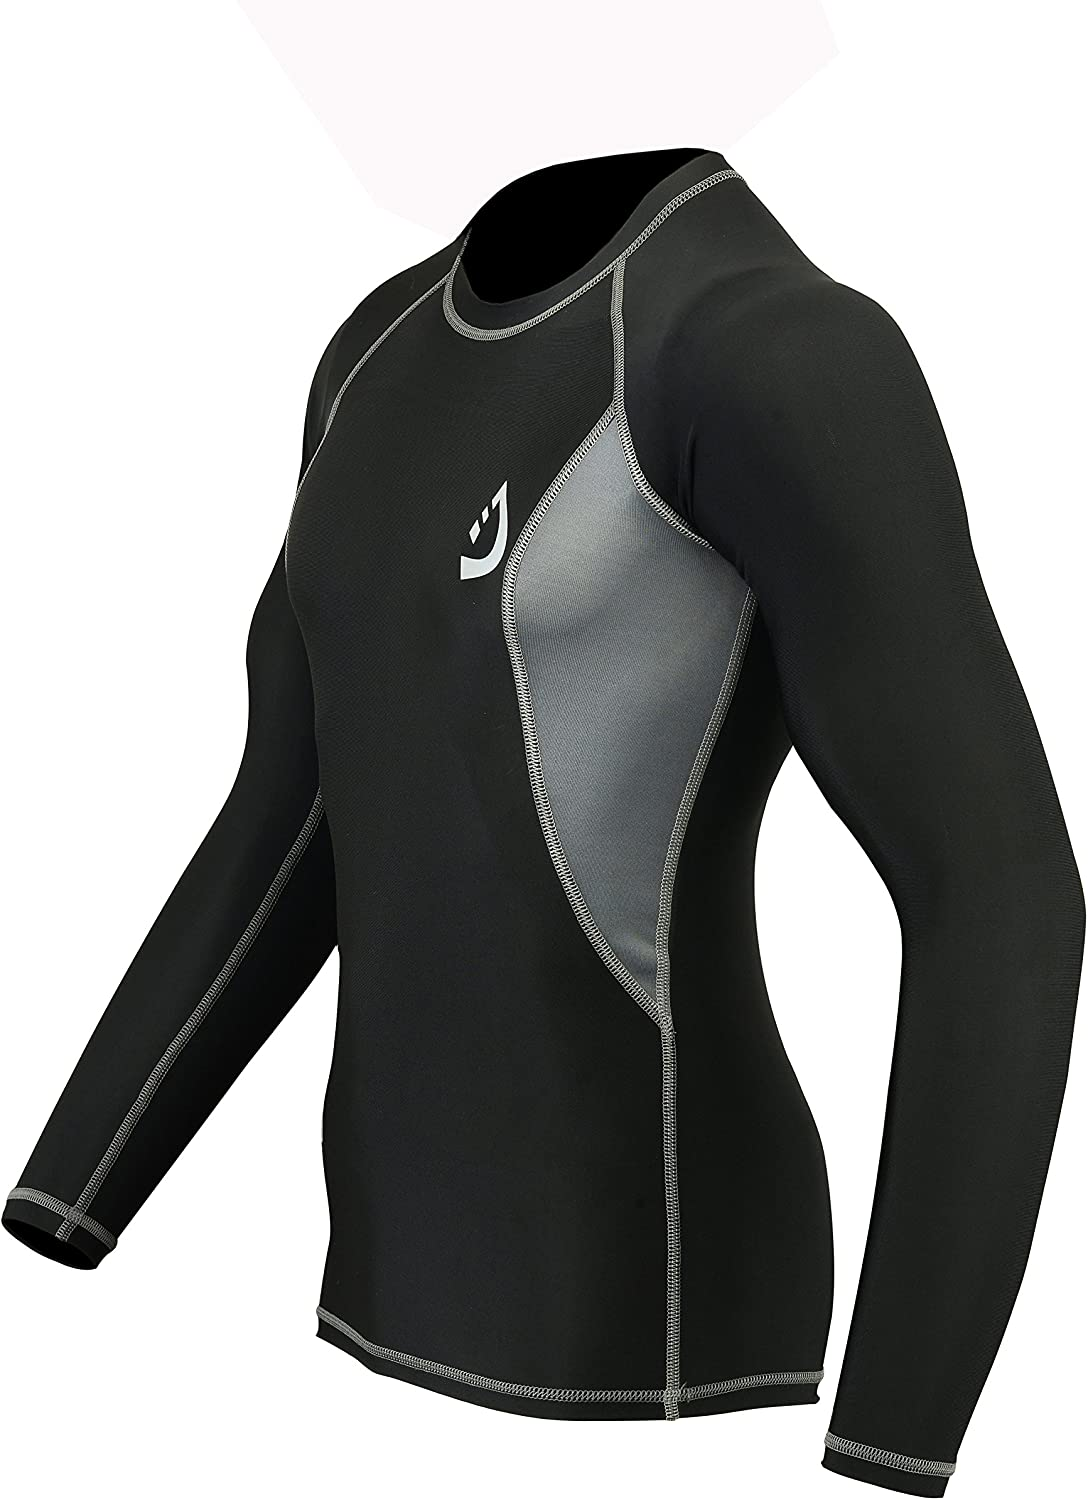 Deckra Mens Compression Baselayer Skin Tight Armour Cool Dry Running Cycling Top